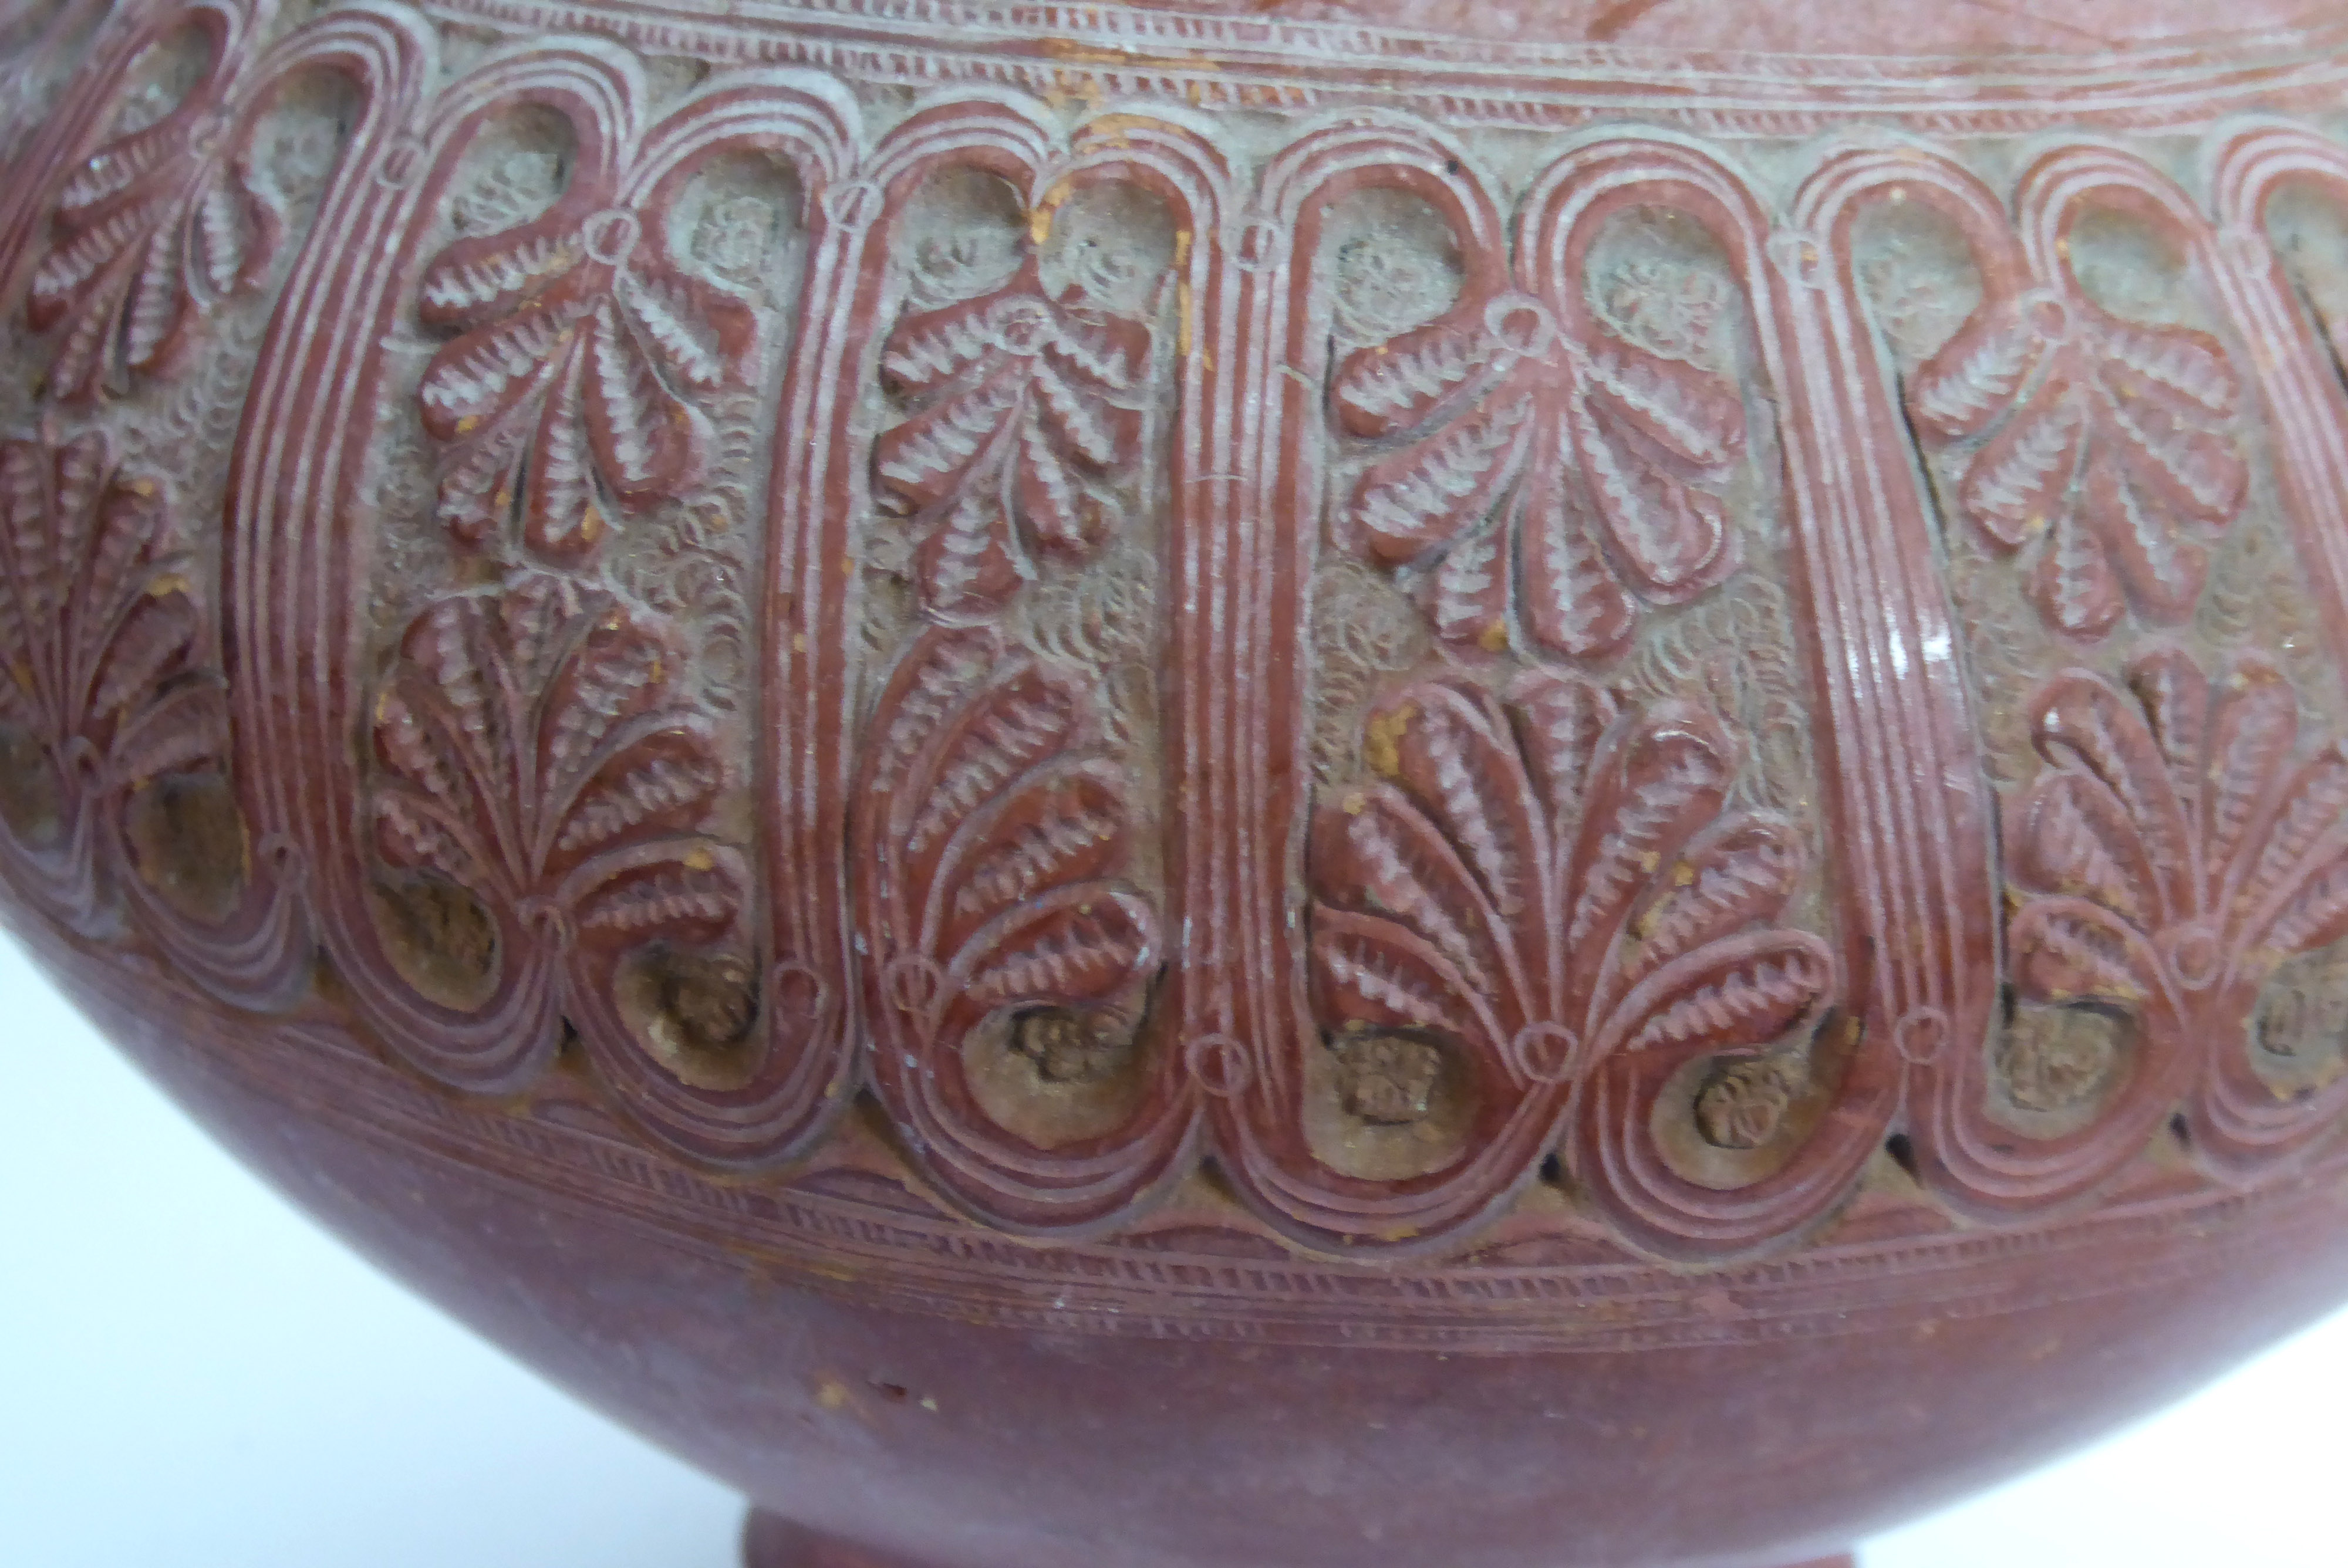 Lot 165 - A ROMAN SAMIAN WARE TERRACOTTA TWIN HANDLED VASE Finely carved with a band of anthemons and